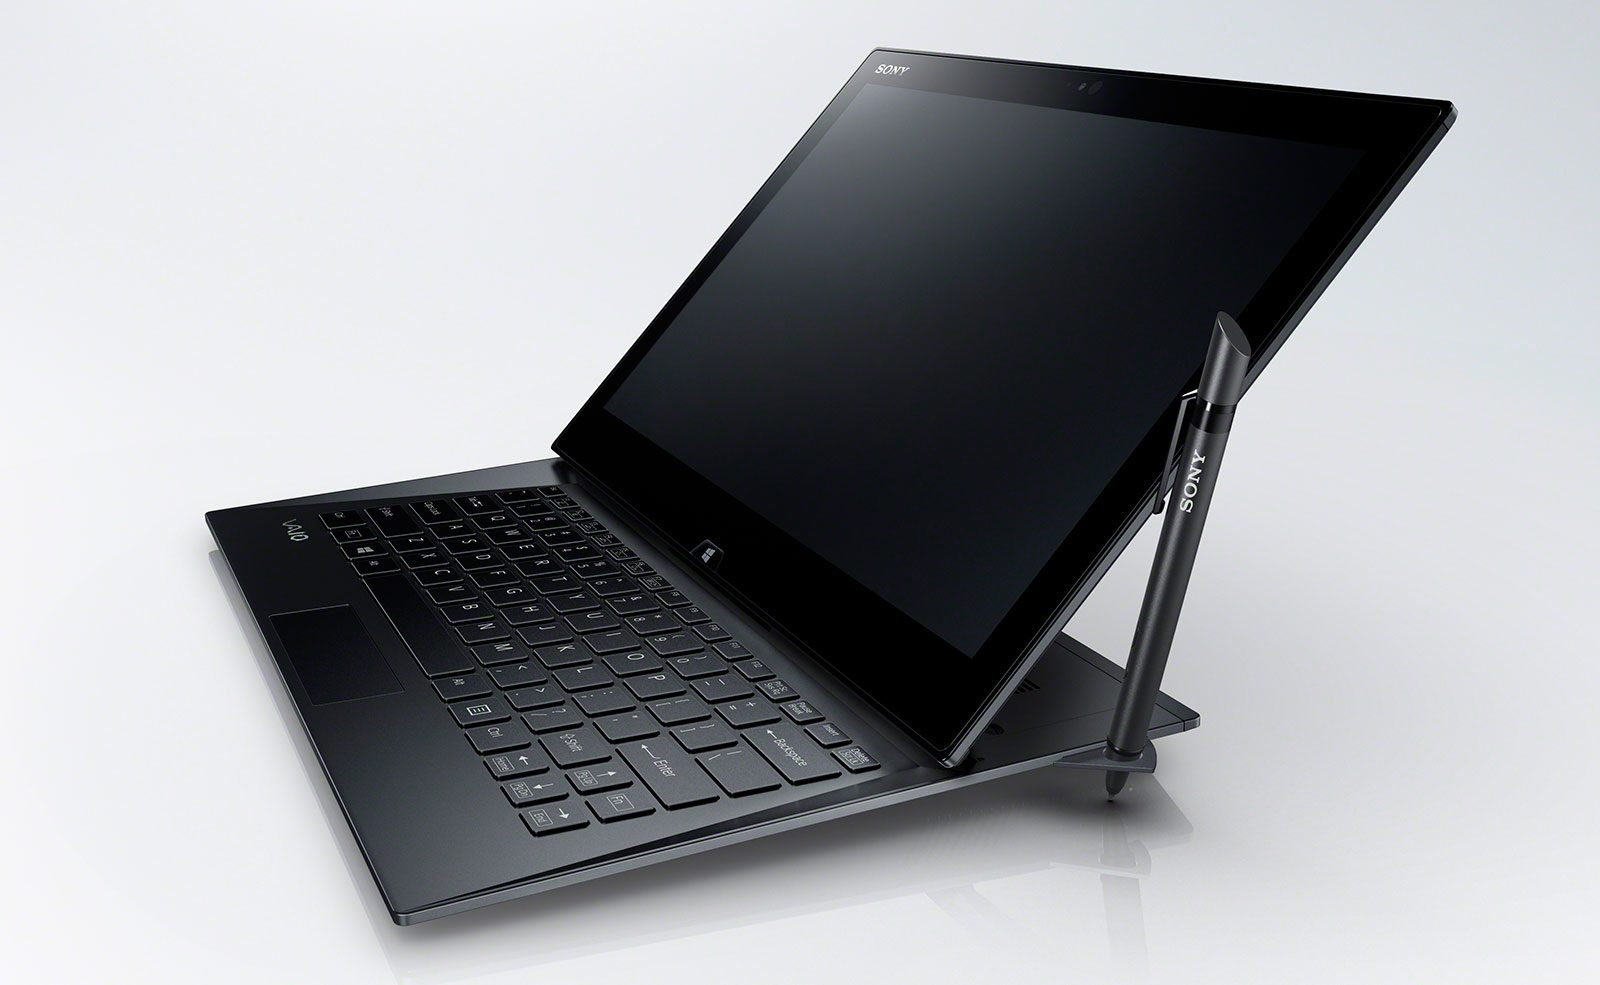 Sony Vaio Duo 13 - still a slider-, but definitely an improved one